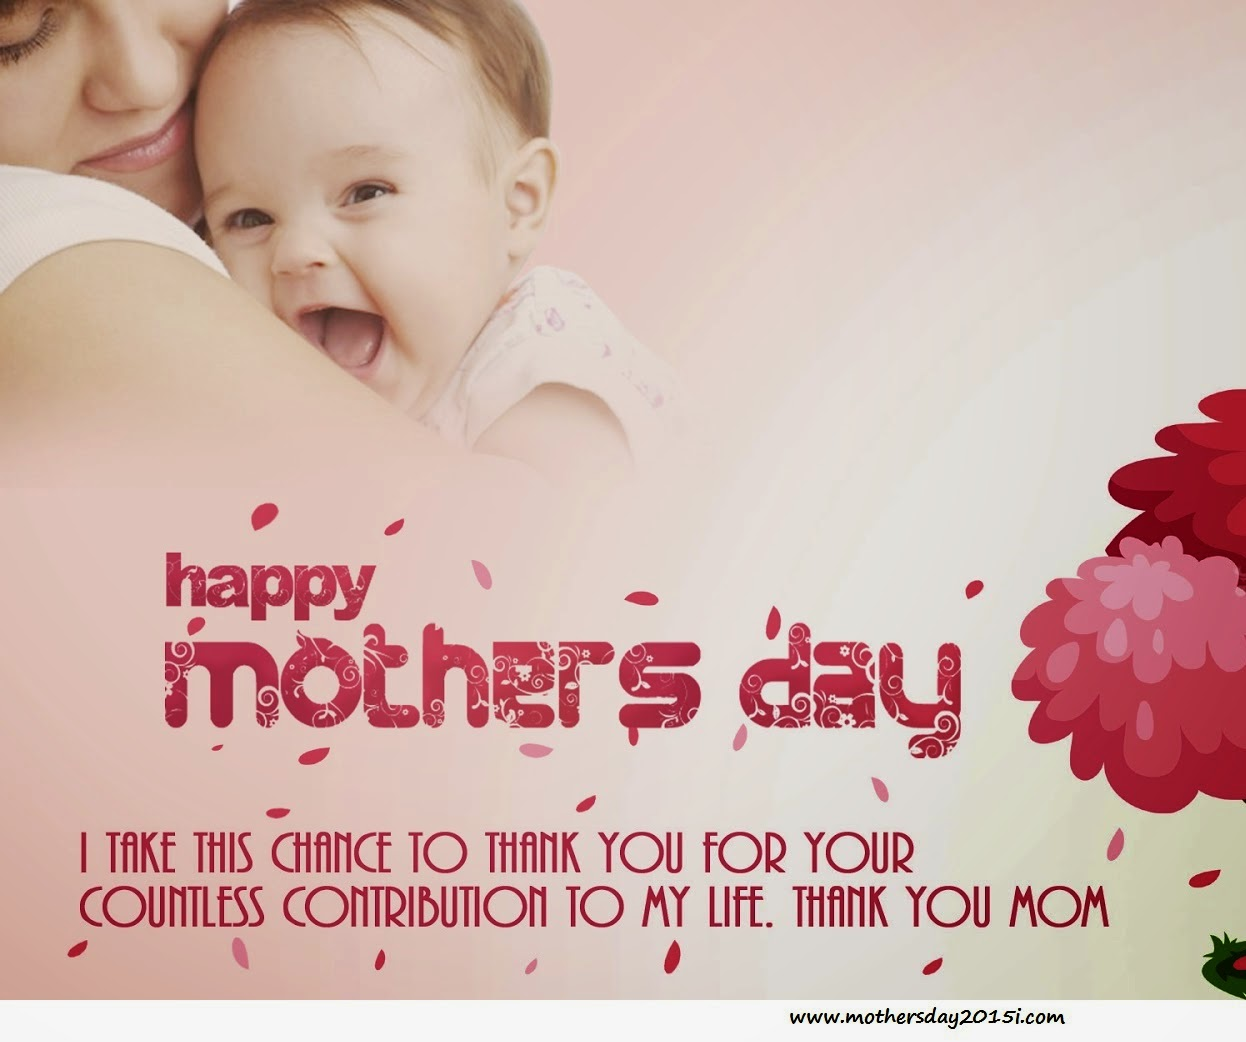 quotes happy mothers day quotes from daughter happy mothers day 2015 ...